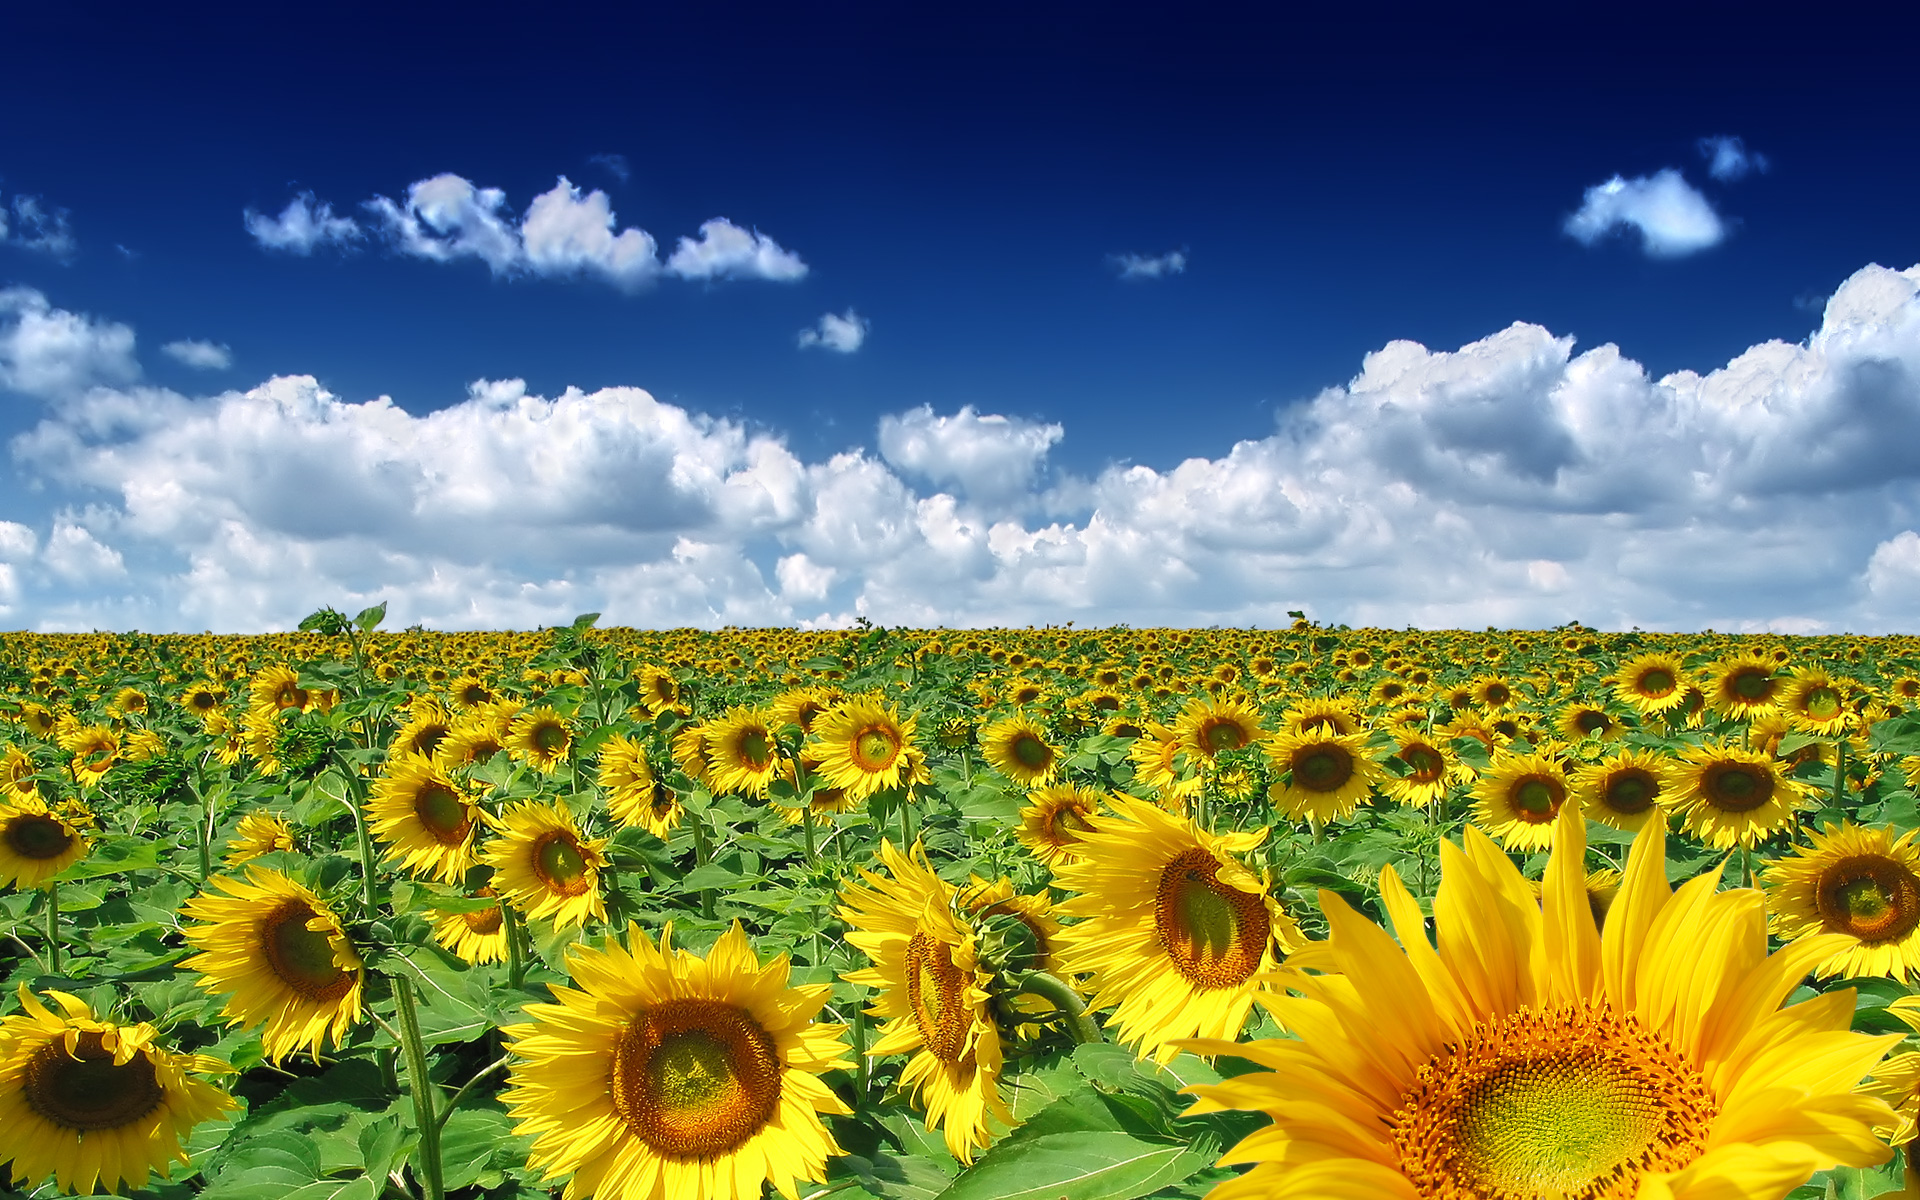 Sun Flowers Picture for Fb Share